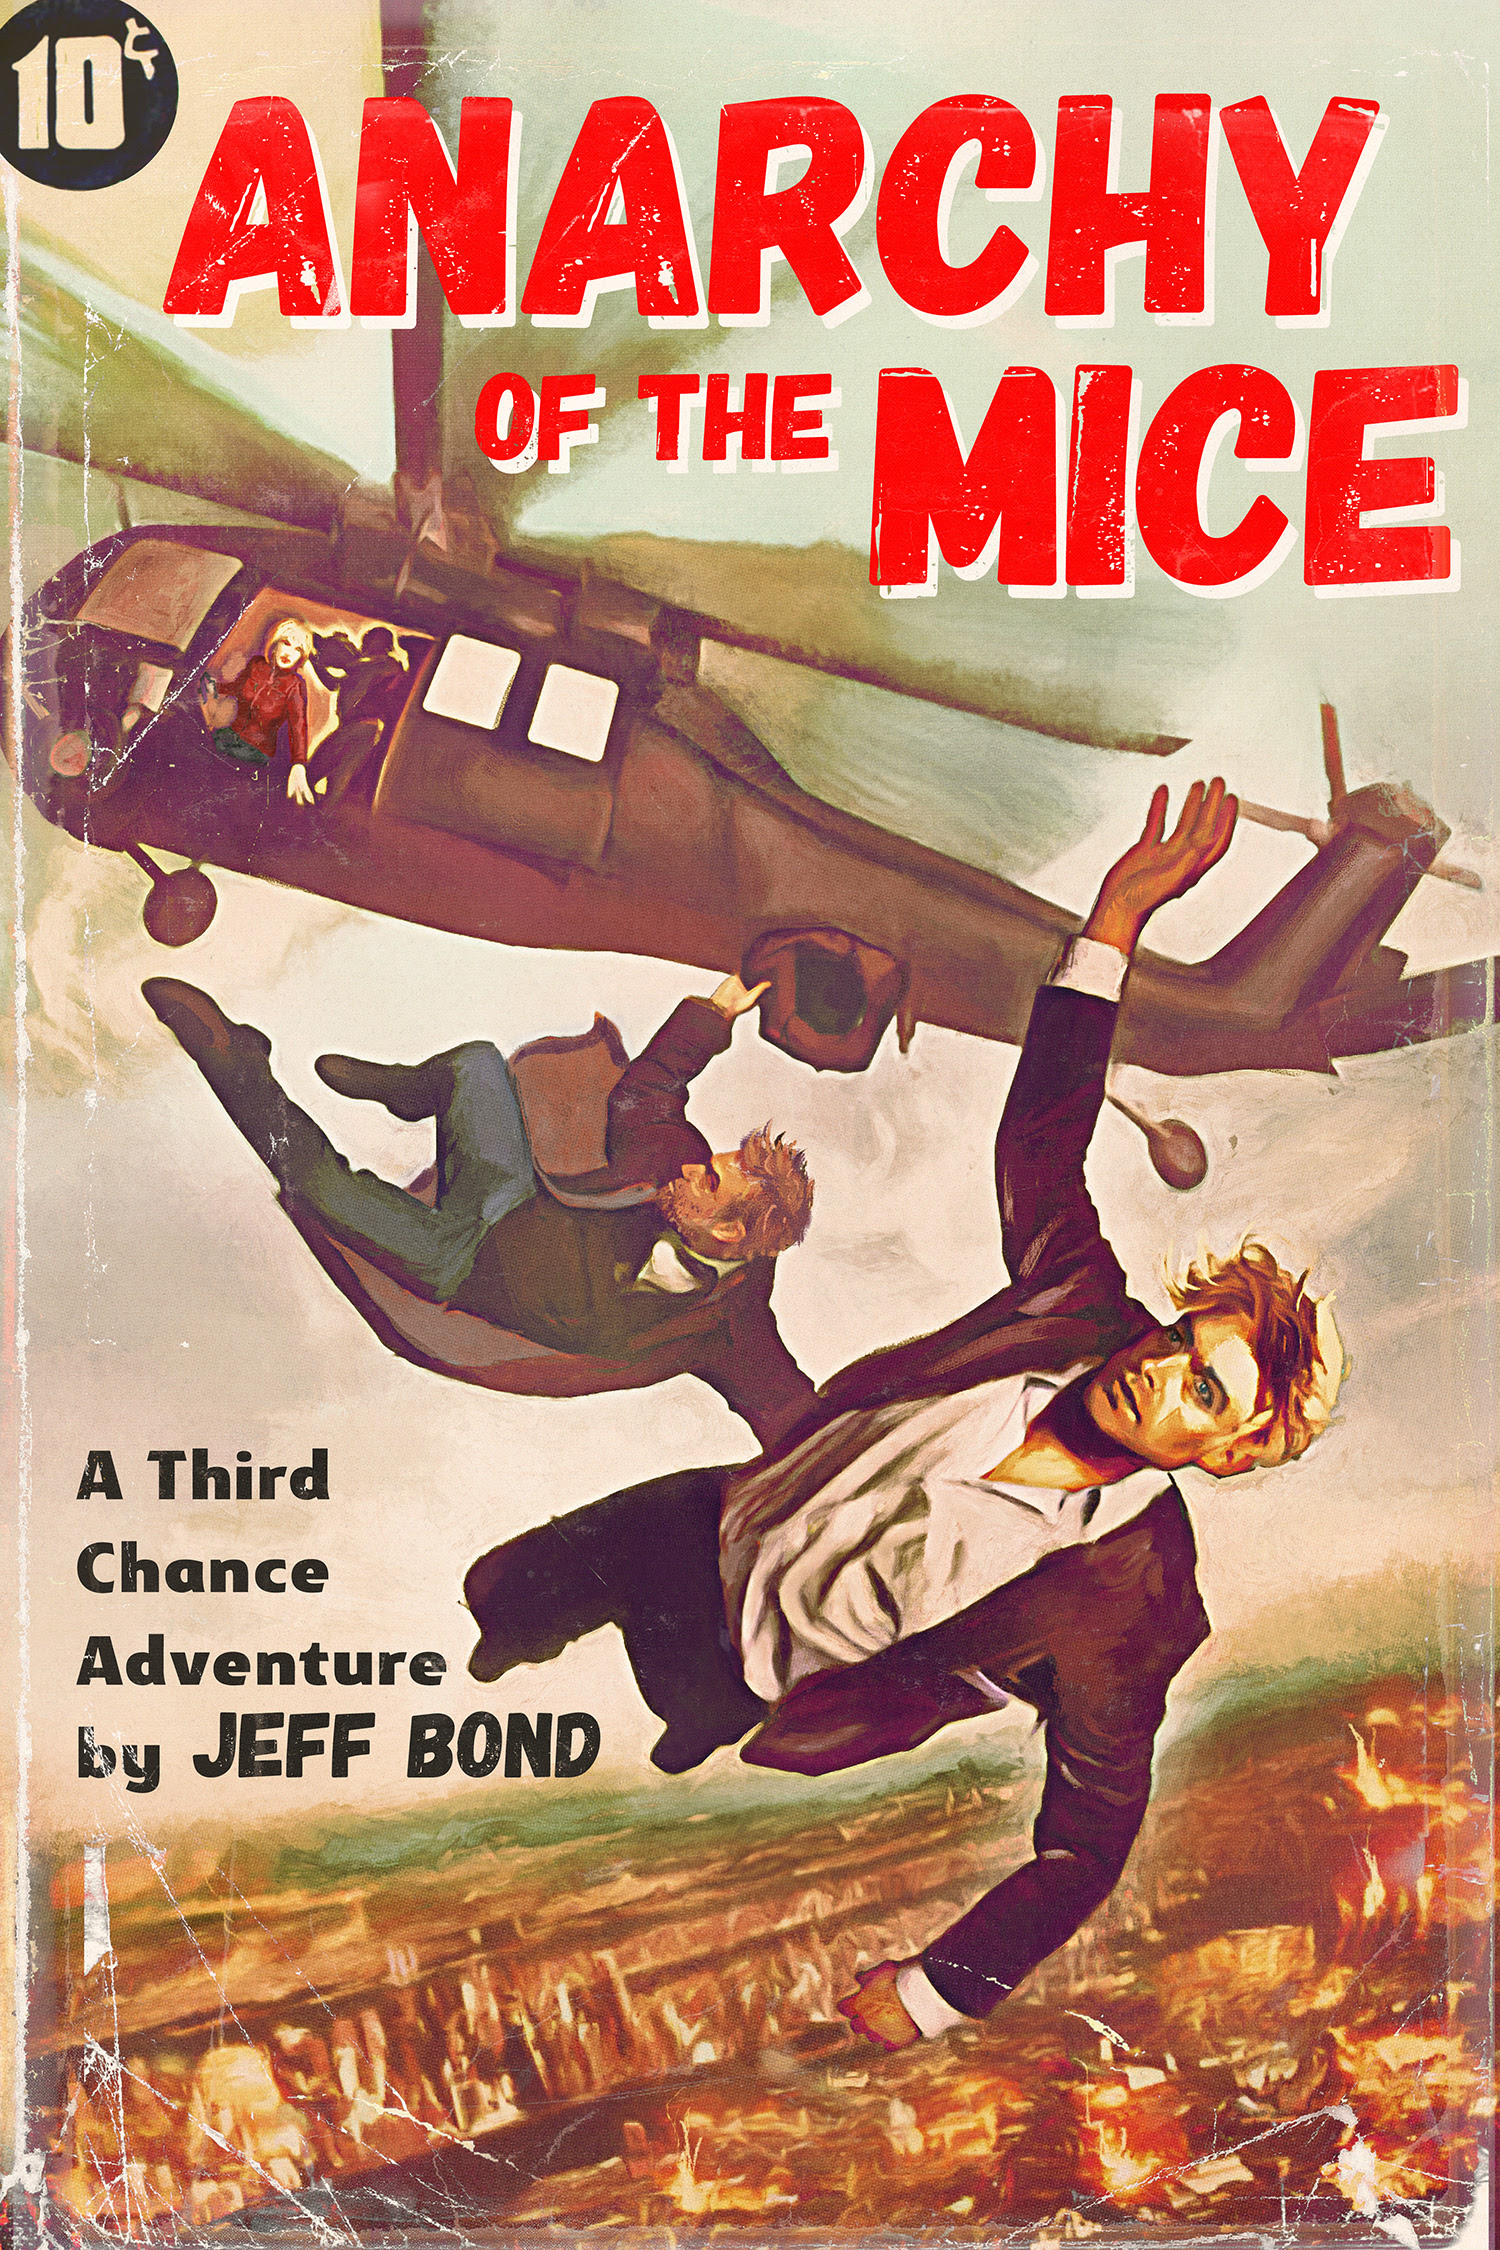 Anarchy of the Mice by Jeff Bond